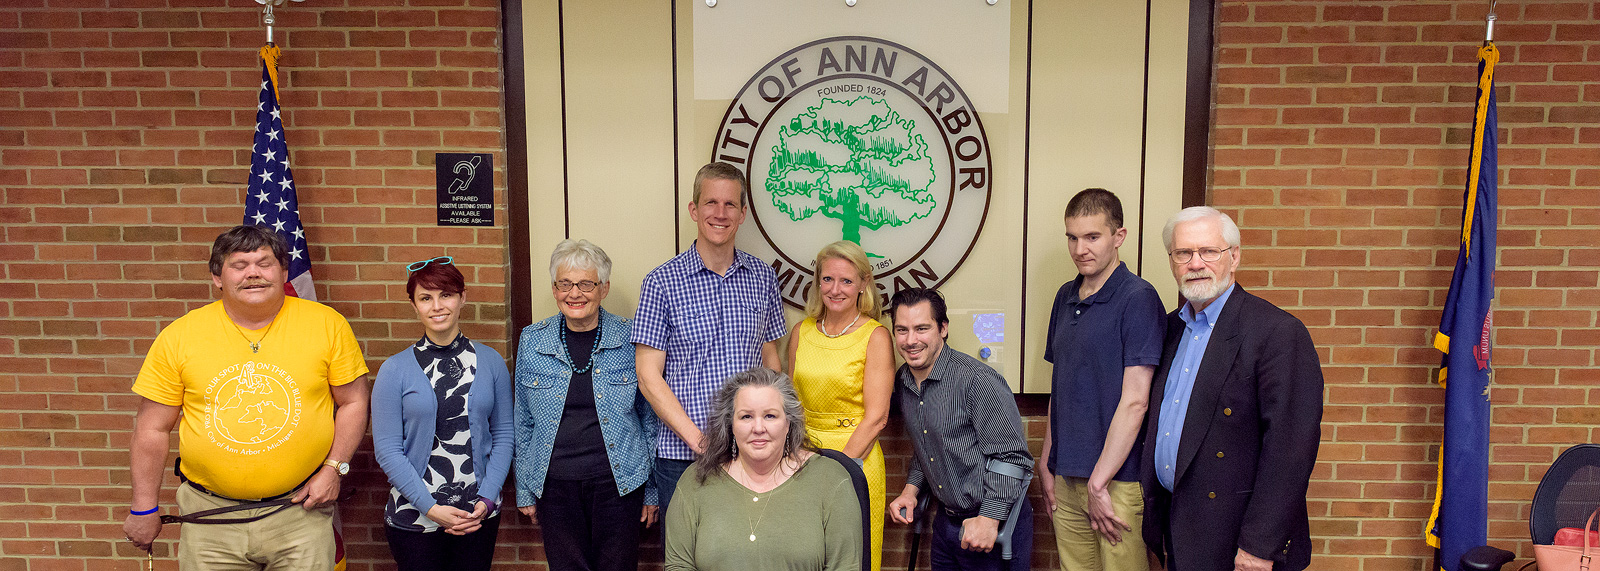 The Ann Arbor Commission on Disability Issues